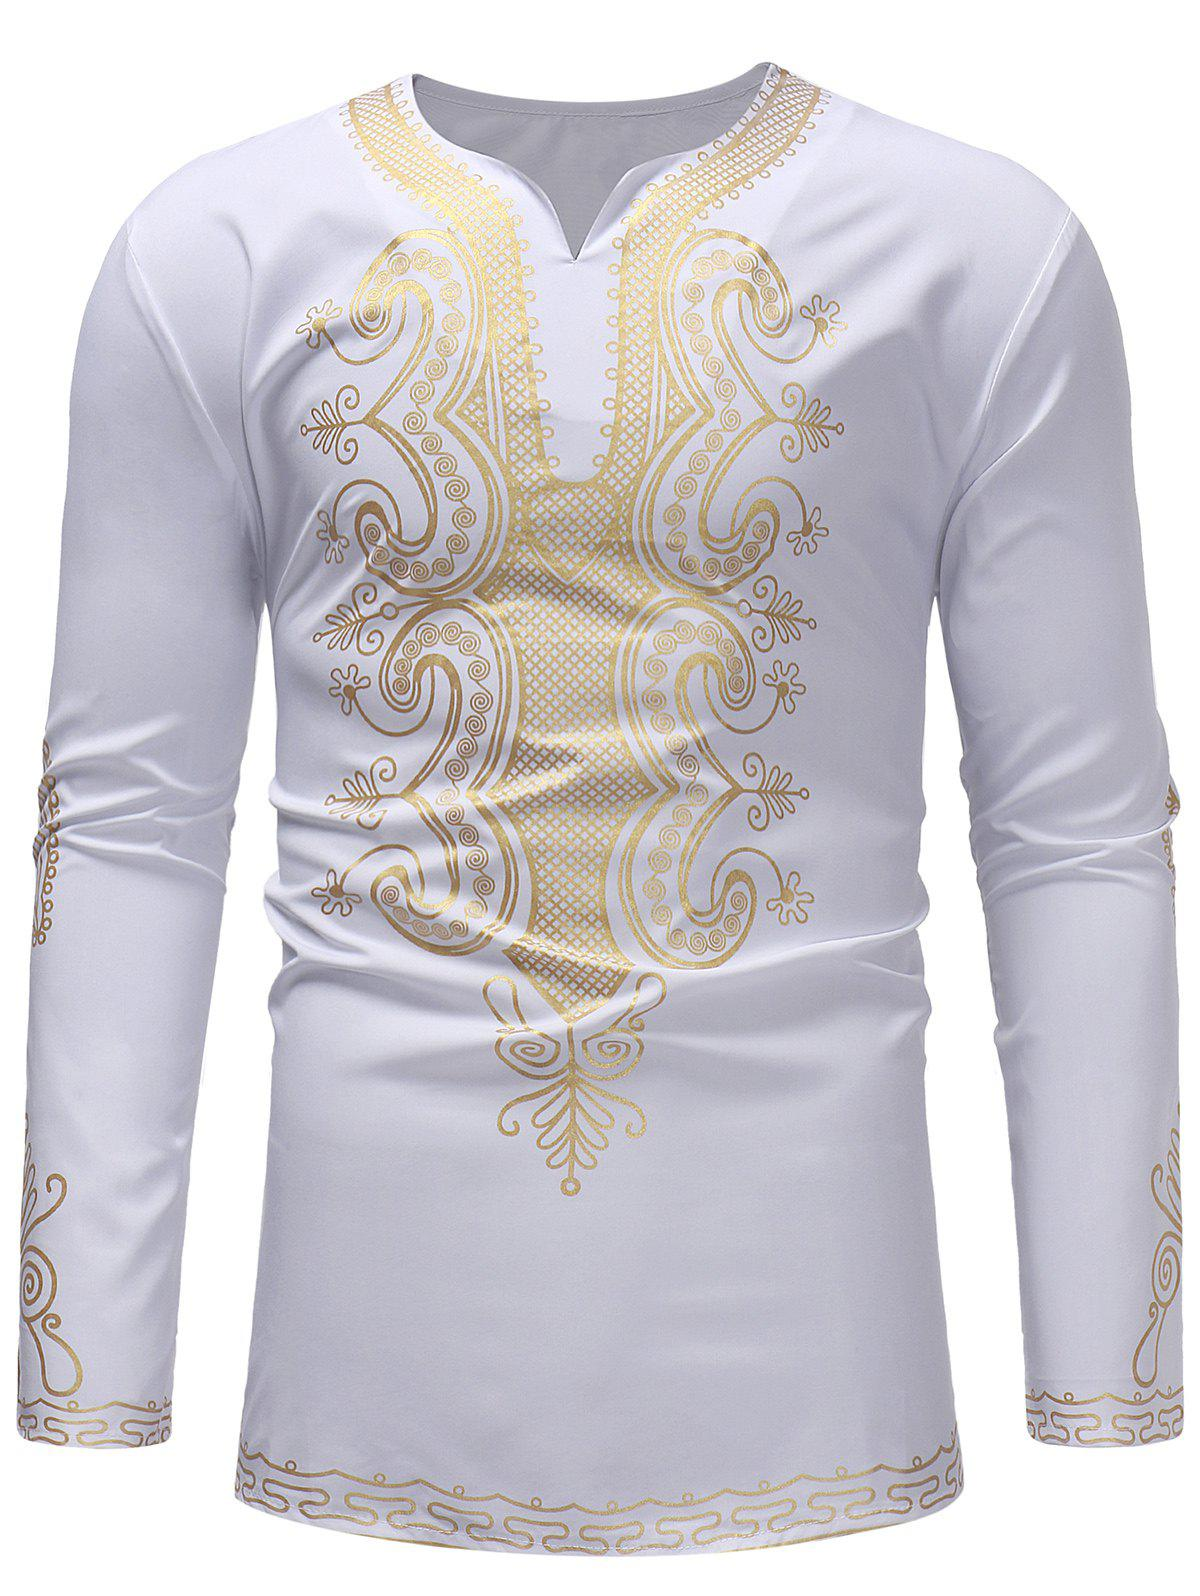 Store Ethnic Print Long Sleeve T-shirt